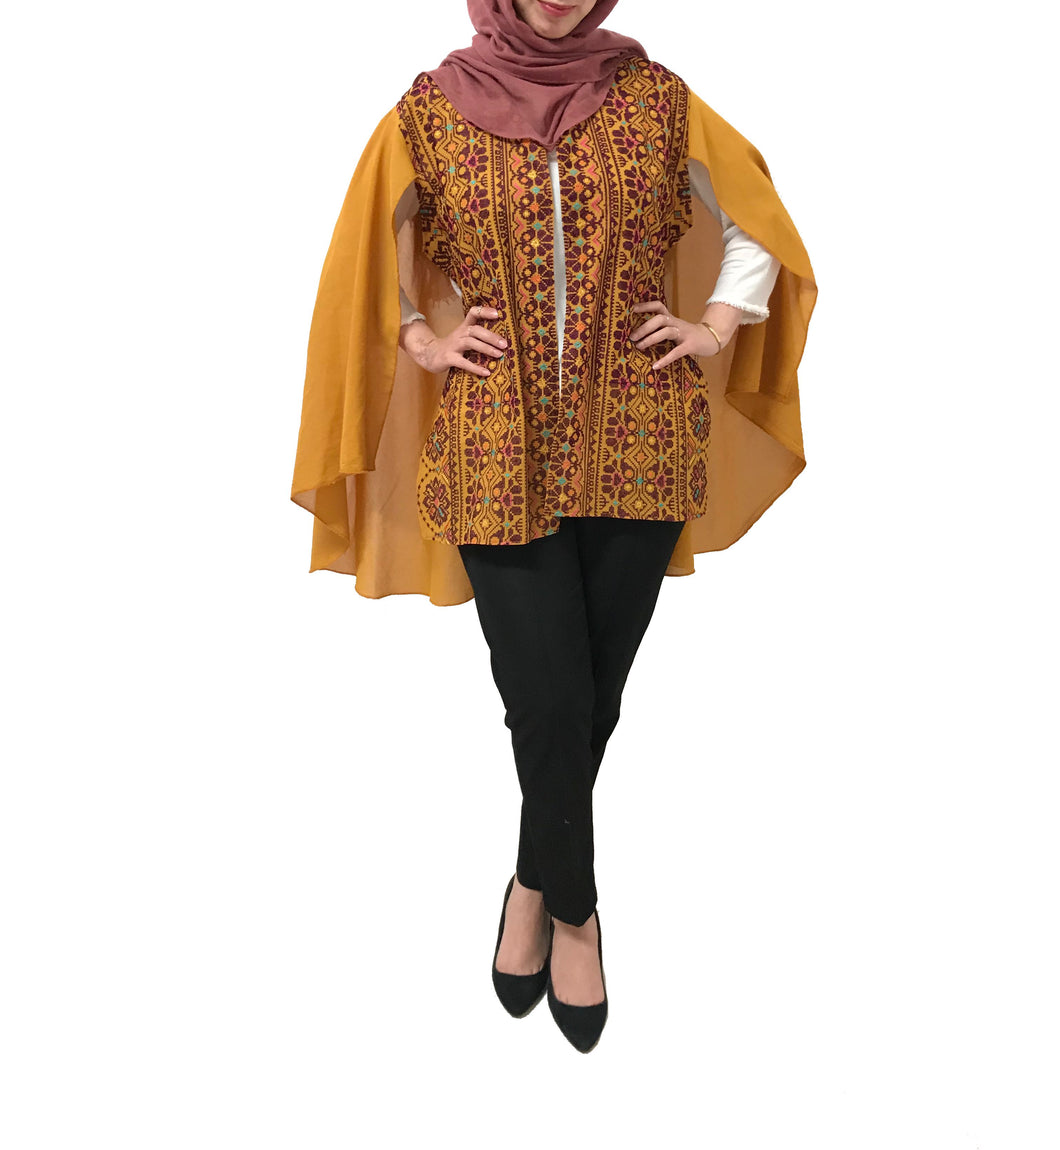 Free Size Mustard Georgette Cloak Sleeve Elegant Embroidered Open Cape Classy Ochre Poncho